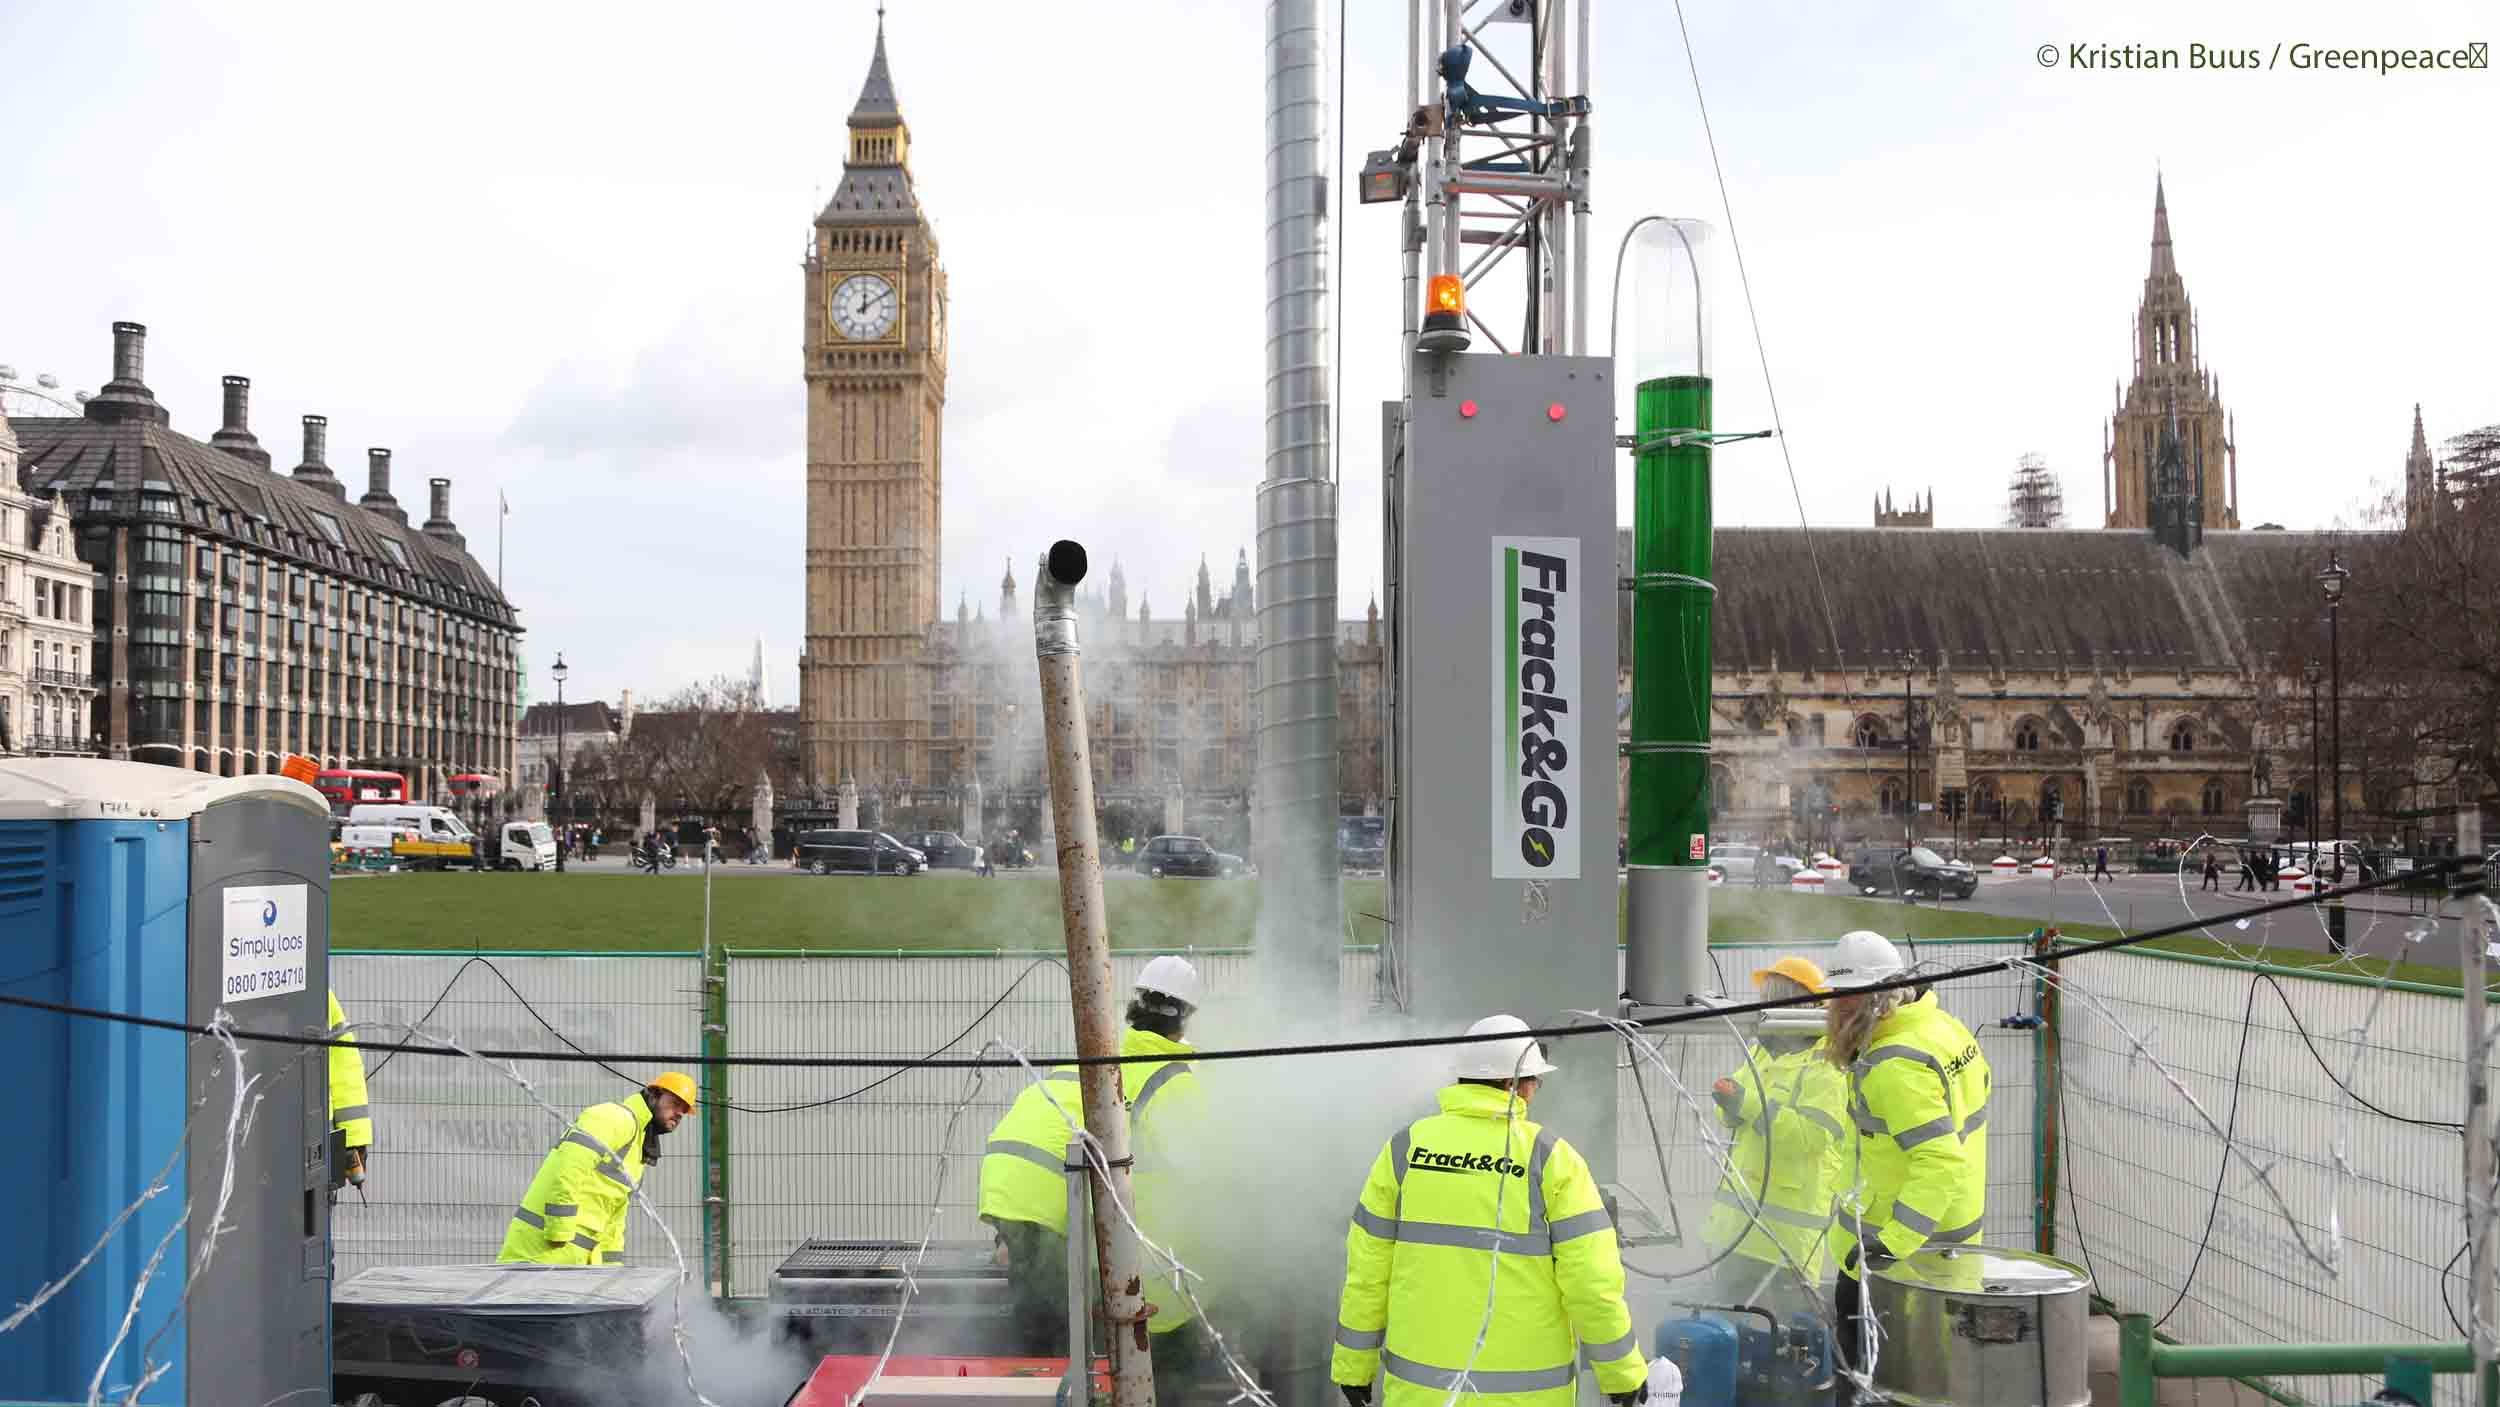 VIDEO: Greenpeace 'fracks' Westminster as Cuadrilla appeal begins